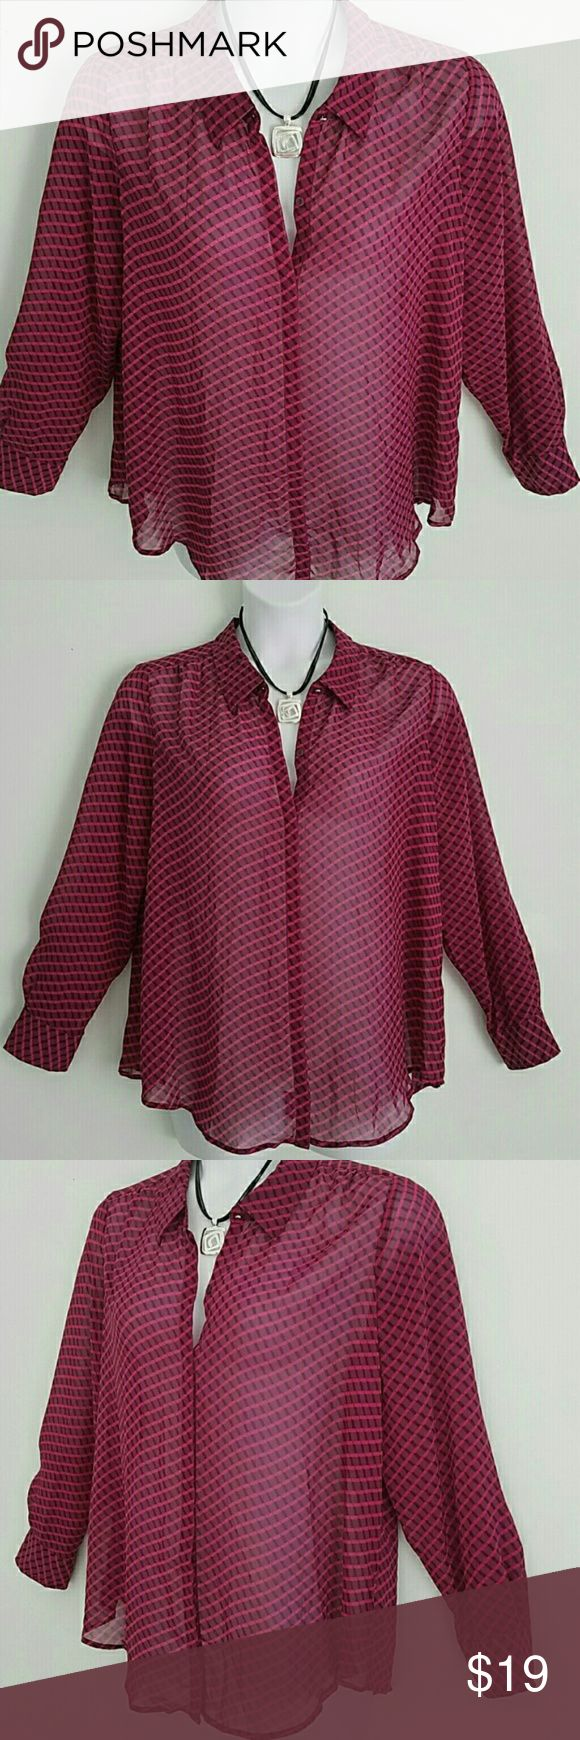 "Liz Claiborne Plus Size Purpley Pink Blouse Bust 24"" Waist 24"" Length 27""  I love this top! Plus size shear and elegant top from Liz Claiborne. Purple and hot pink color combination Shear Style Button Down with decorative top button. 100% Polyester Machine Washable Excellent condition, no issues.  Please let me know if you have any questions. Thank you for looking!  Xoxoxoxo Liz Claiborne Tops Blouses"